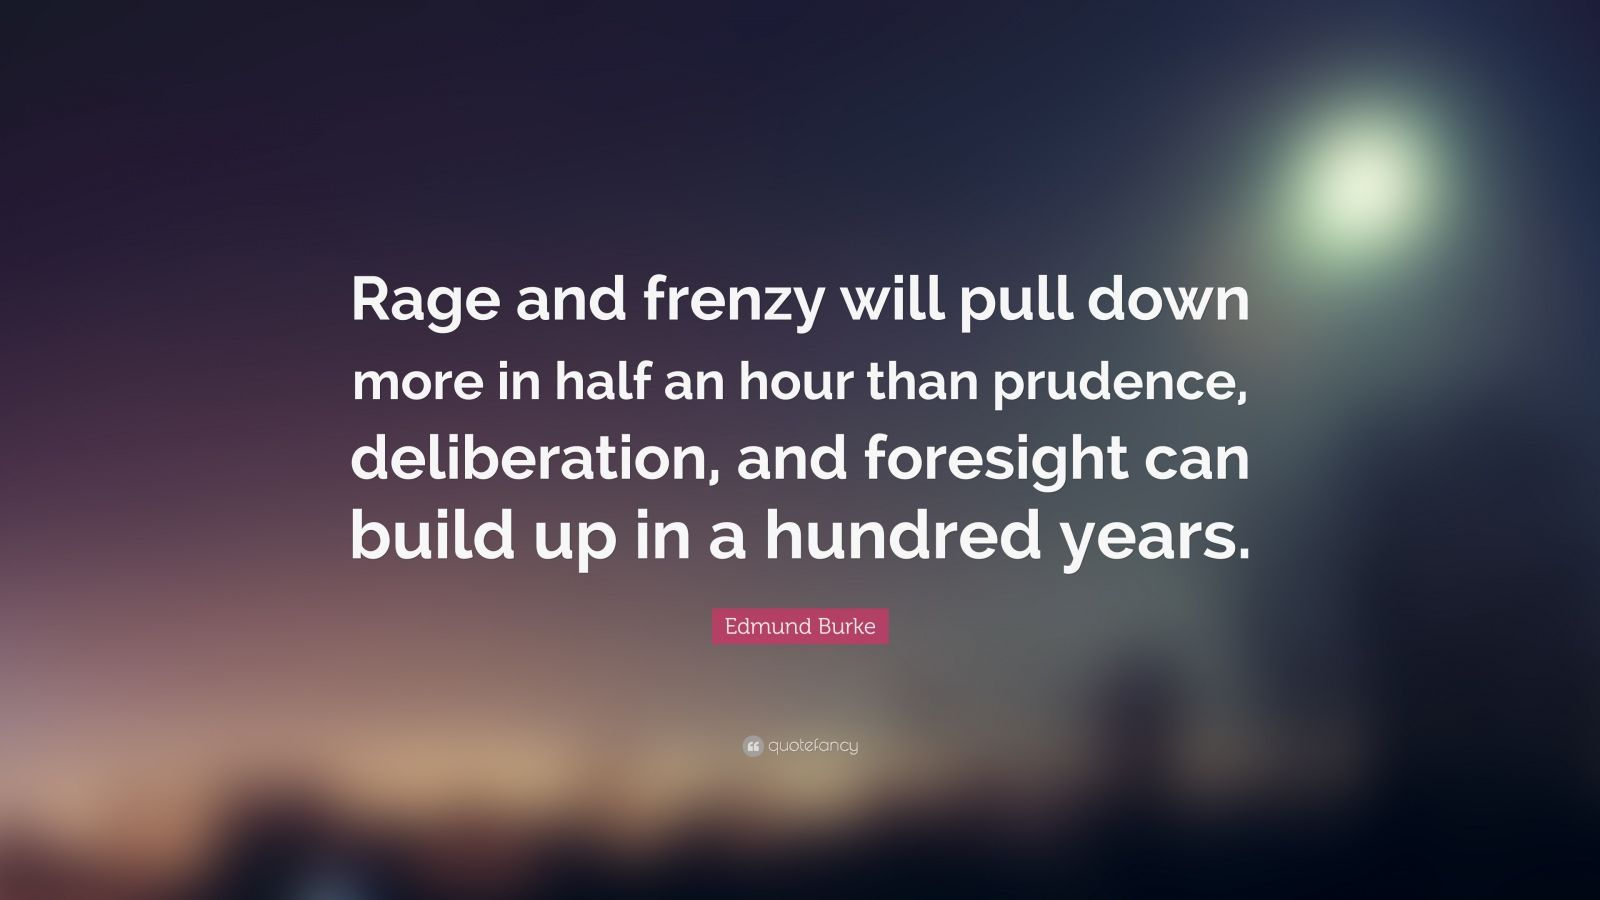 """Edmund Burke Quote: """"Rage and frenzy will pull down more in half an hour than prudence, deliberation, and foresight can build up in a hundred years."""""""